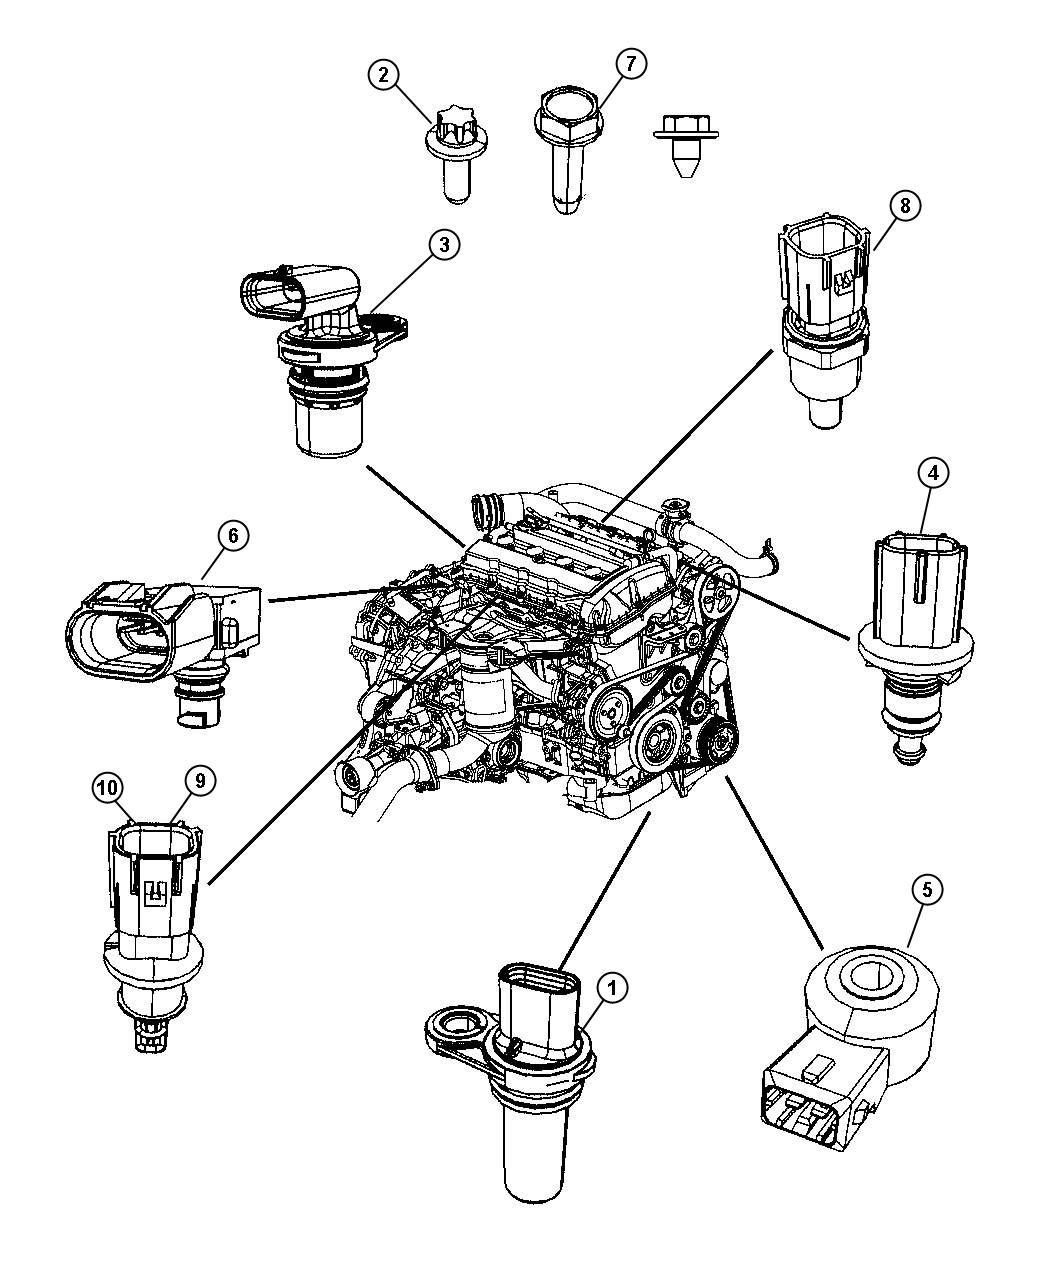 1995 jetta ignition wiring diagram with 4 8l Oil Pressure Sensor Location on Saturn Vue Starter Location moreover 88 Cherokee Wiring Diagram furthermore 4 8l Oil Pressure Sensor Location furthermore Window Air Conditioner Wiring Diagram together with 7r8x4 Ranger 1993 Ford Ranger 4 0 V 6 Will Crank.